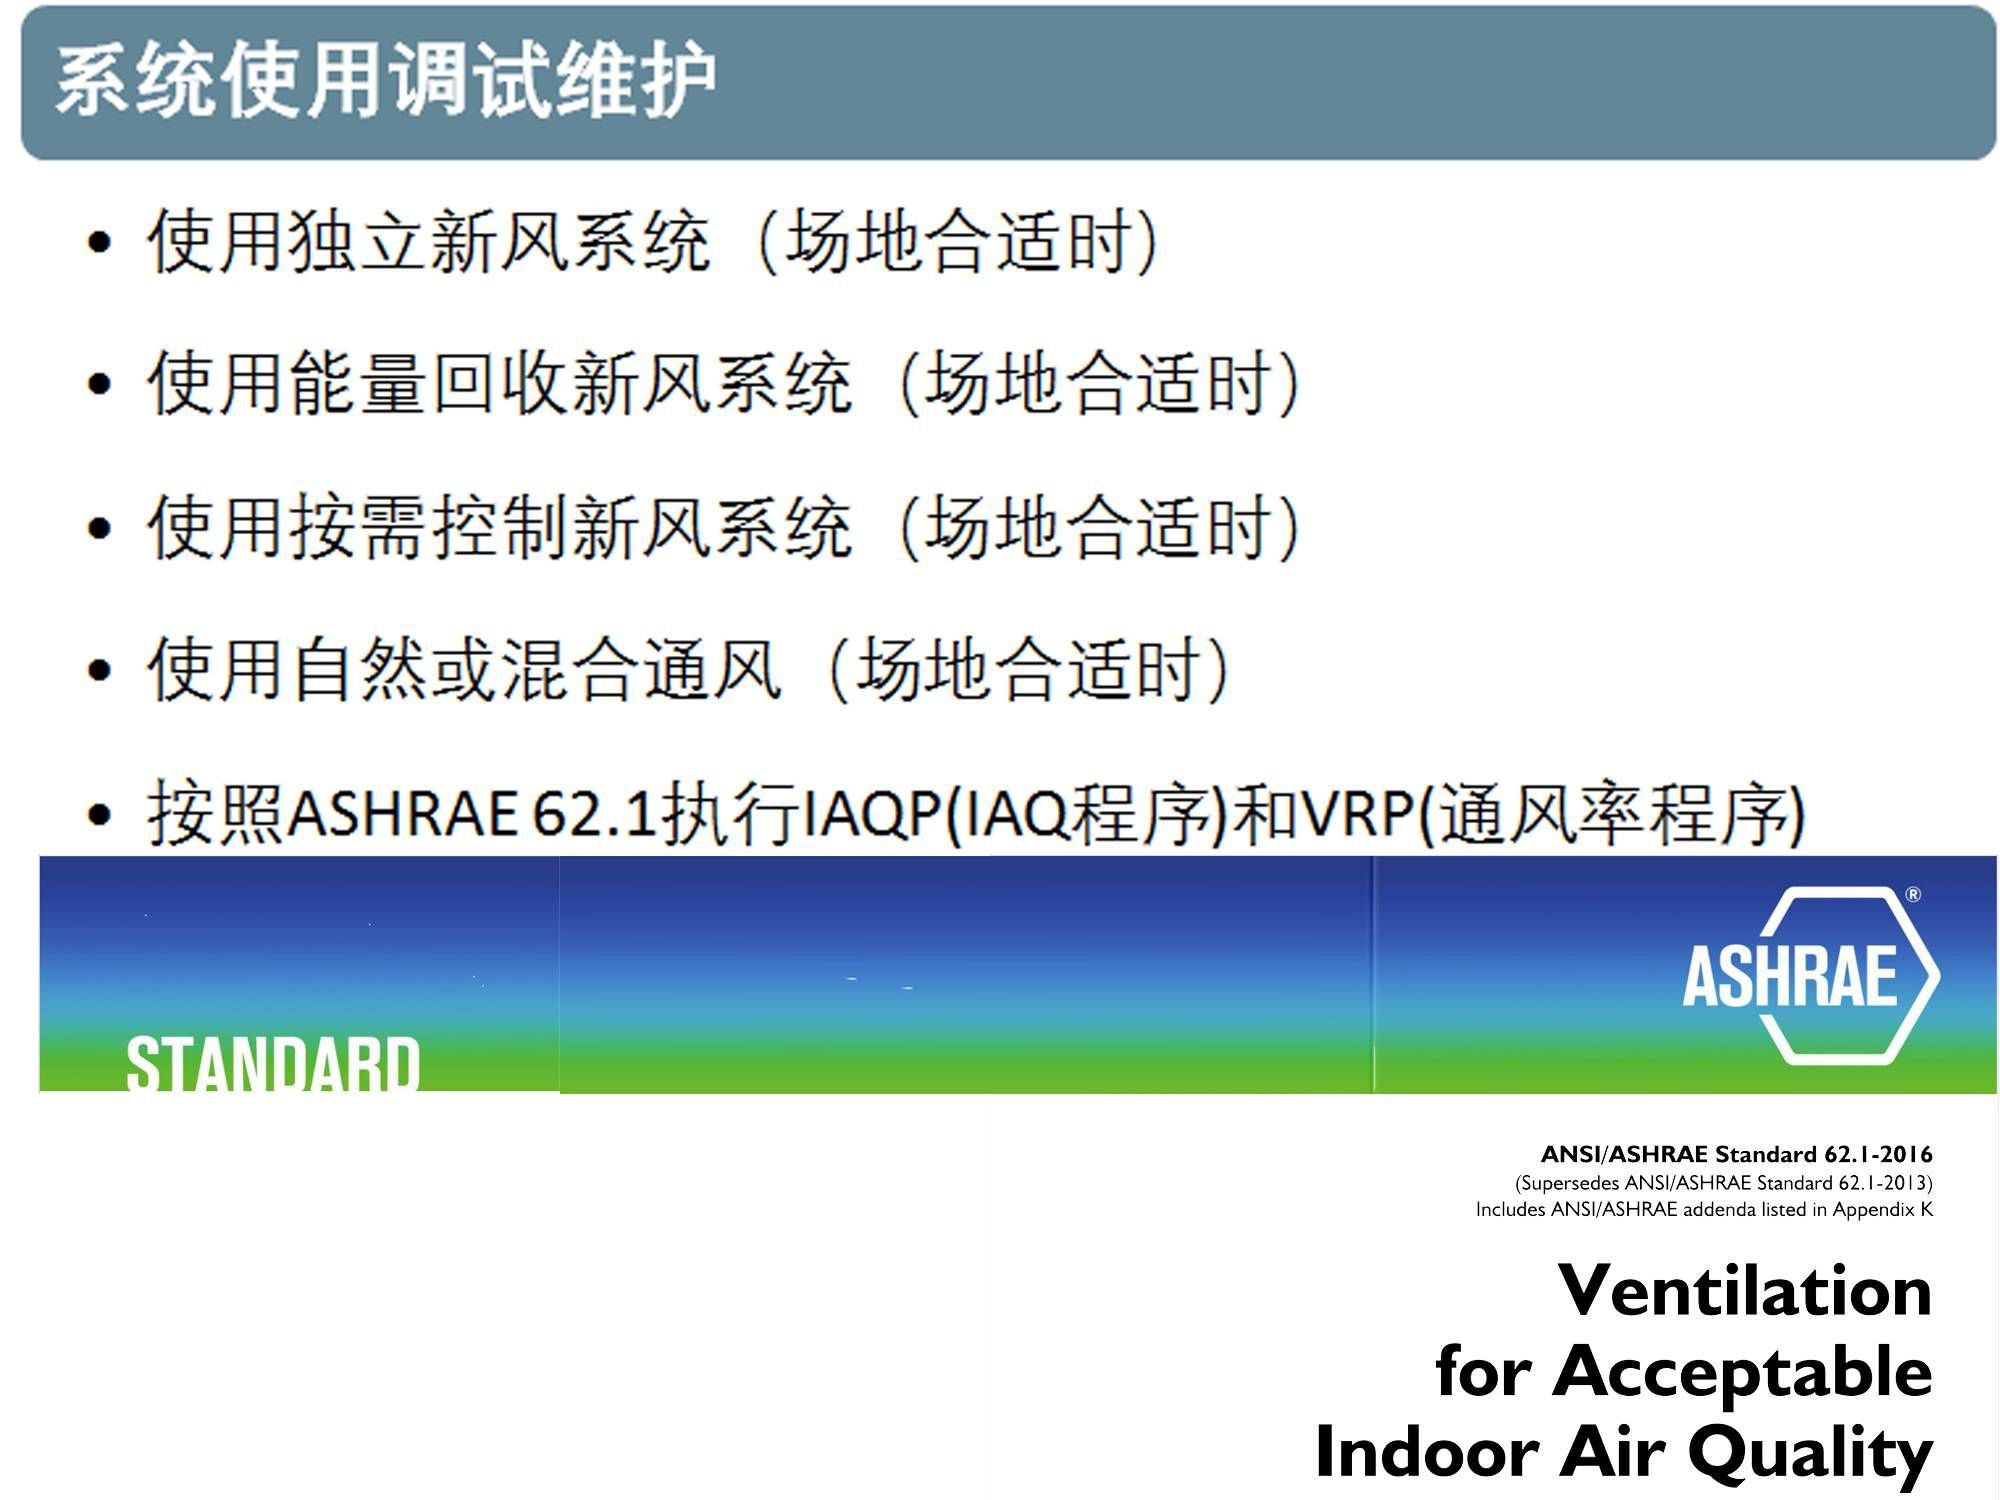 cn-20170928-applications-hvacr-indoor-air-quality02.png